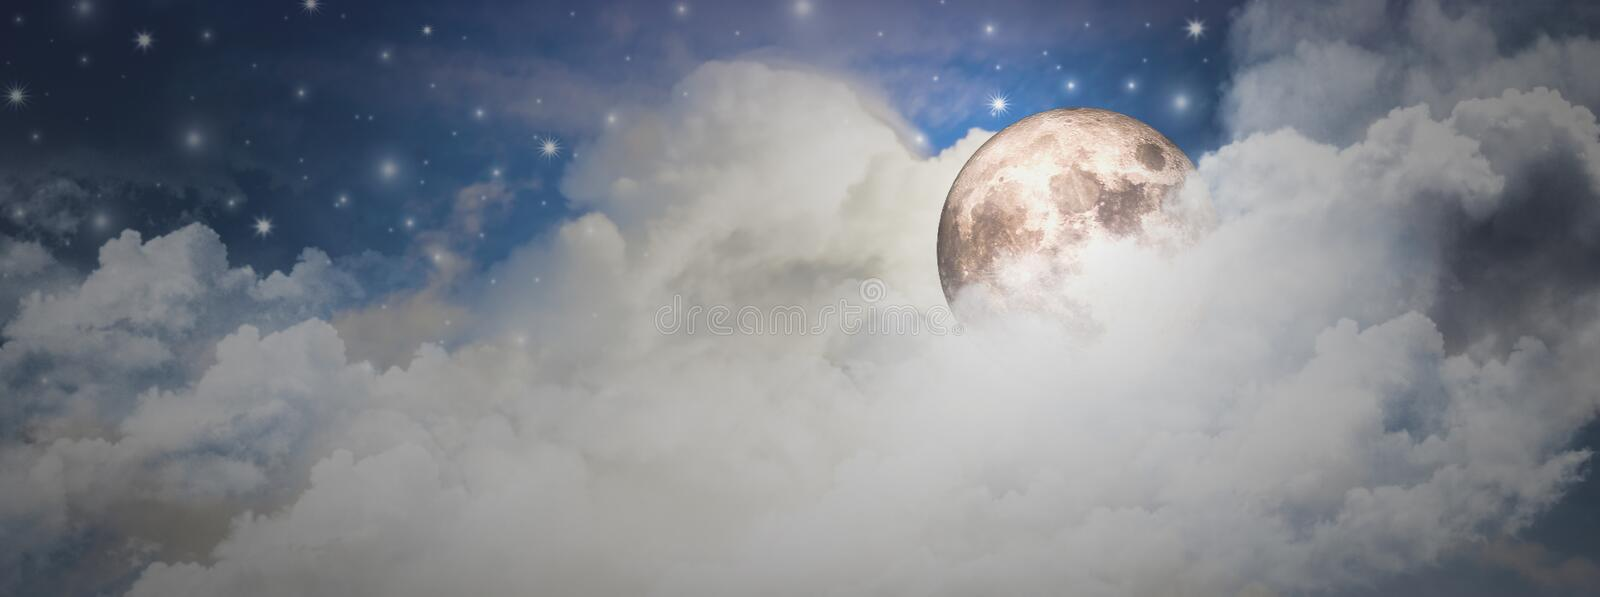 Super Moon with wonderful night and many clouds and stars shine brightly, concept beauty of night sky, banner horizontal for web royalty free stock image